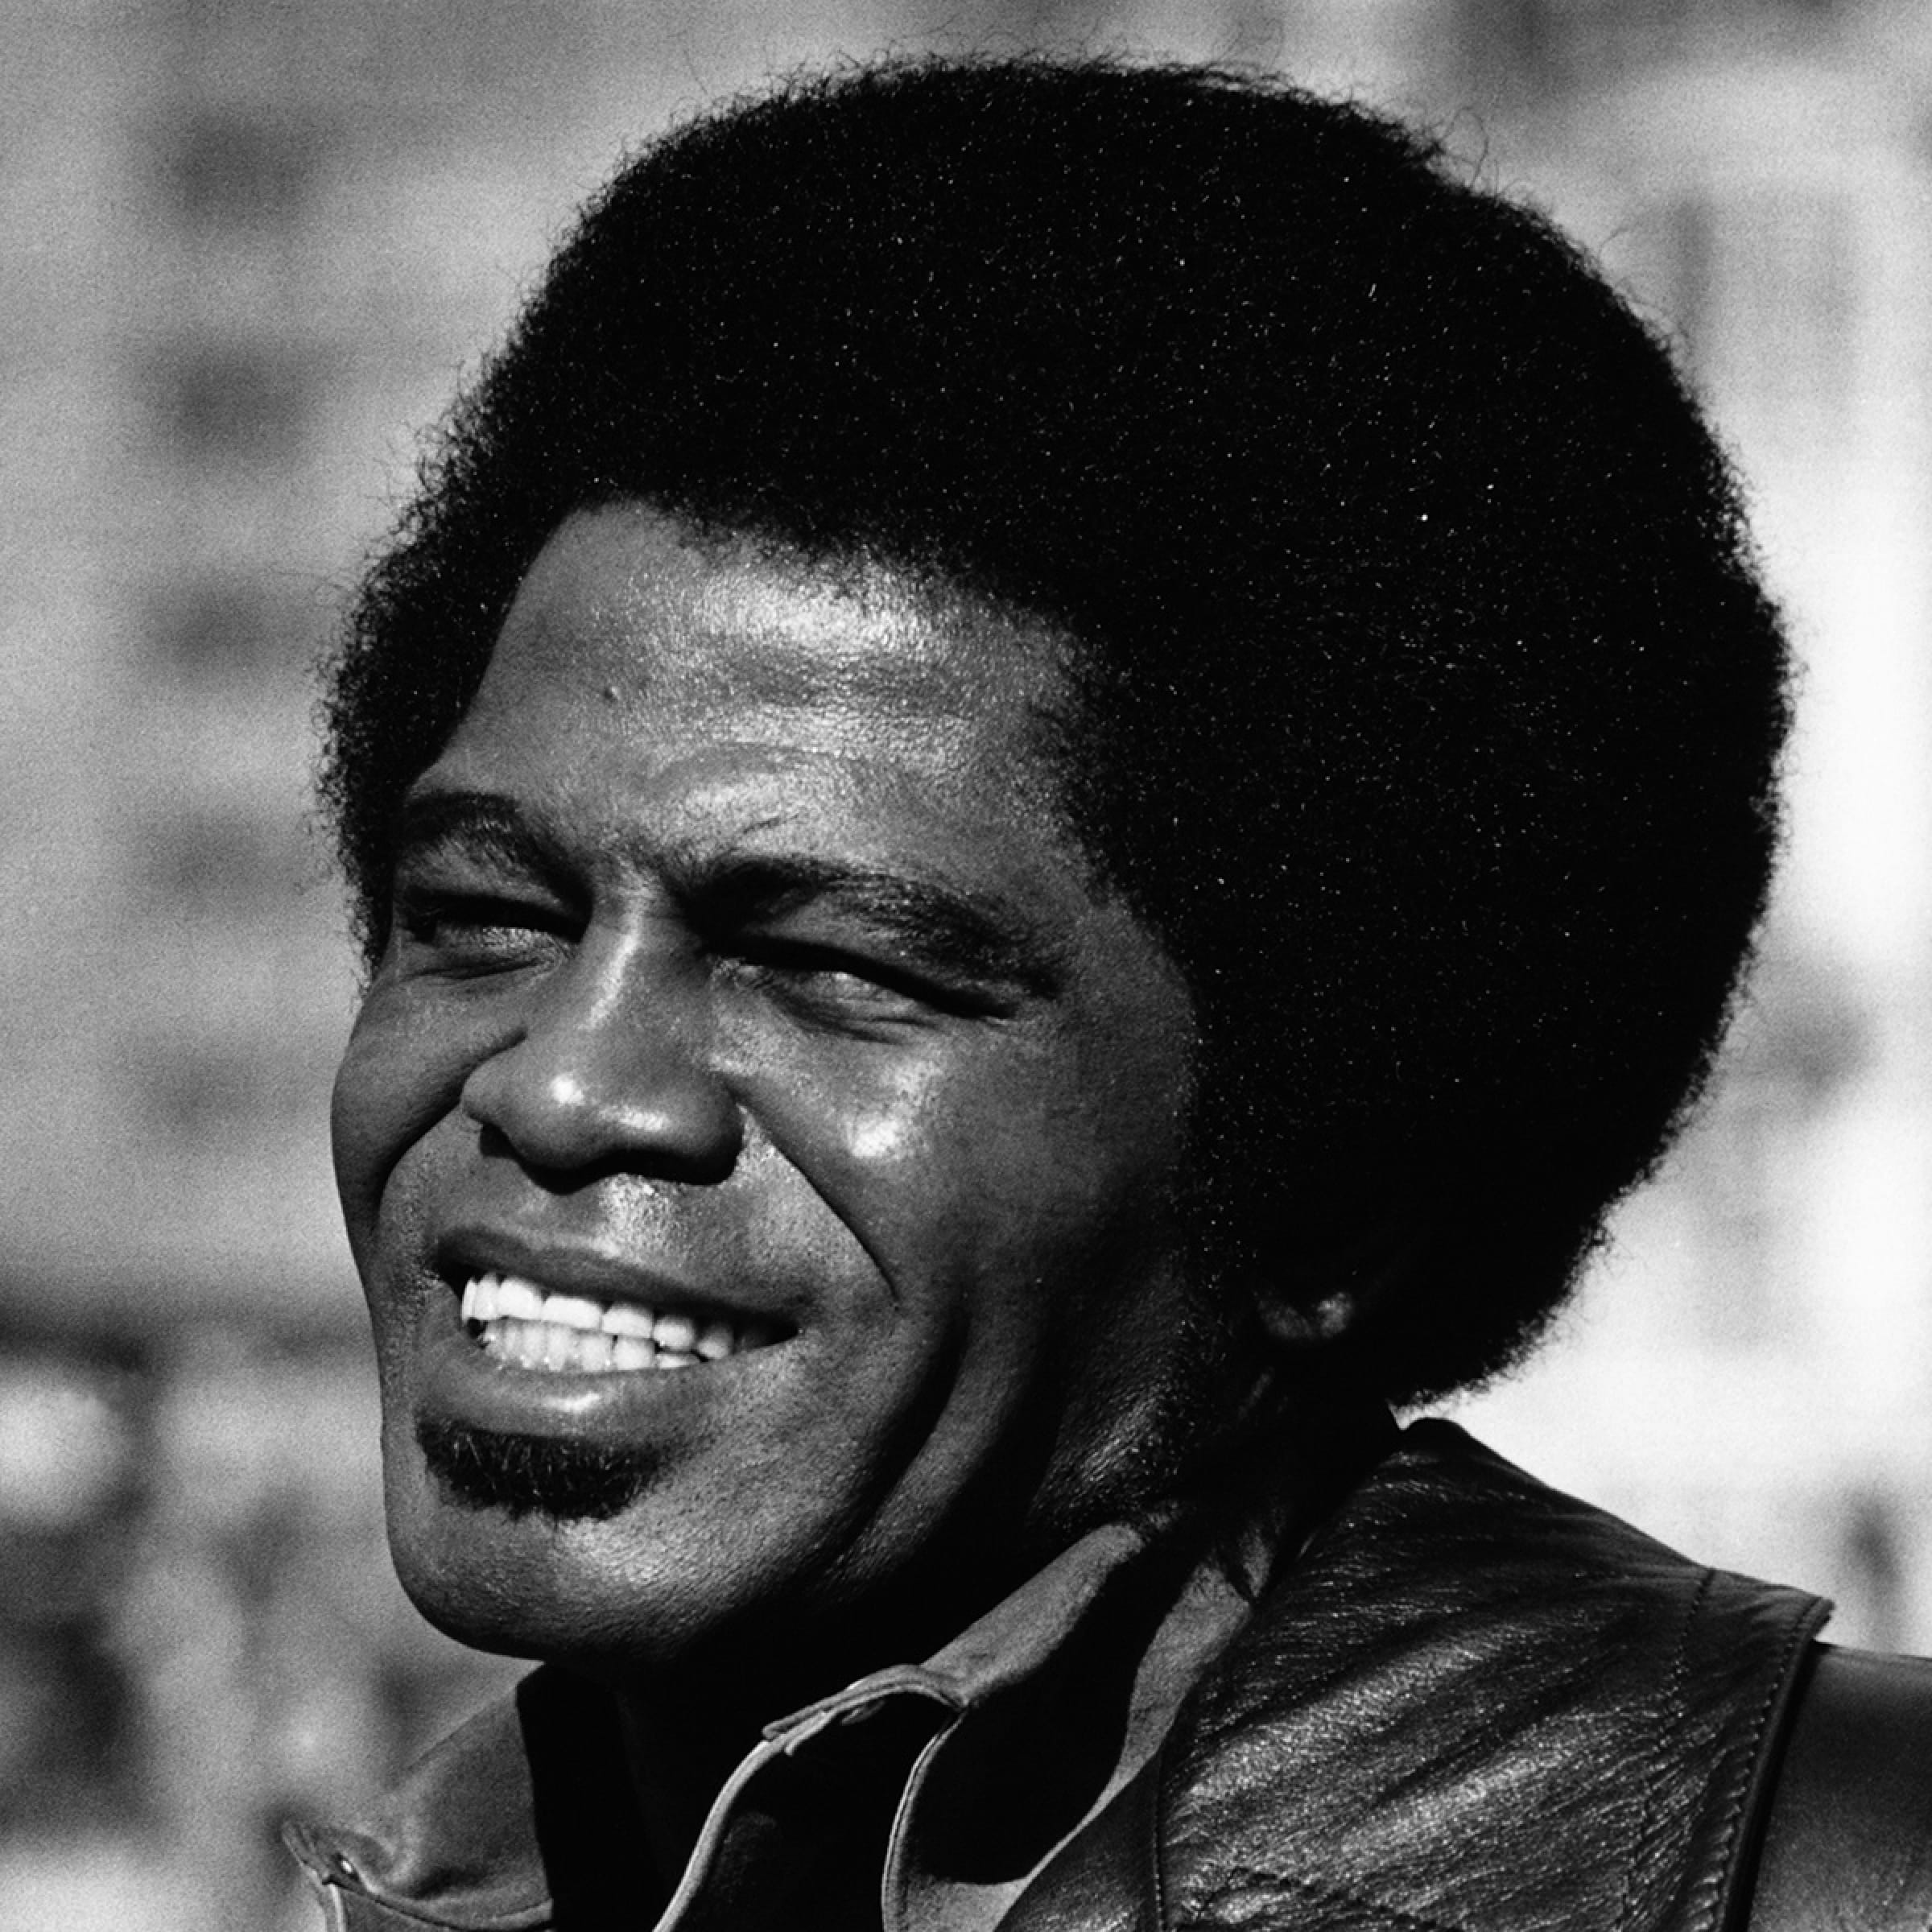 James Brown pictured in a black-and-white photo. He smiles, eyes squinting against the sun, in front of a blurred cityscape.